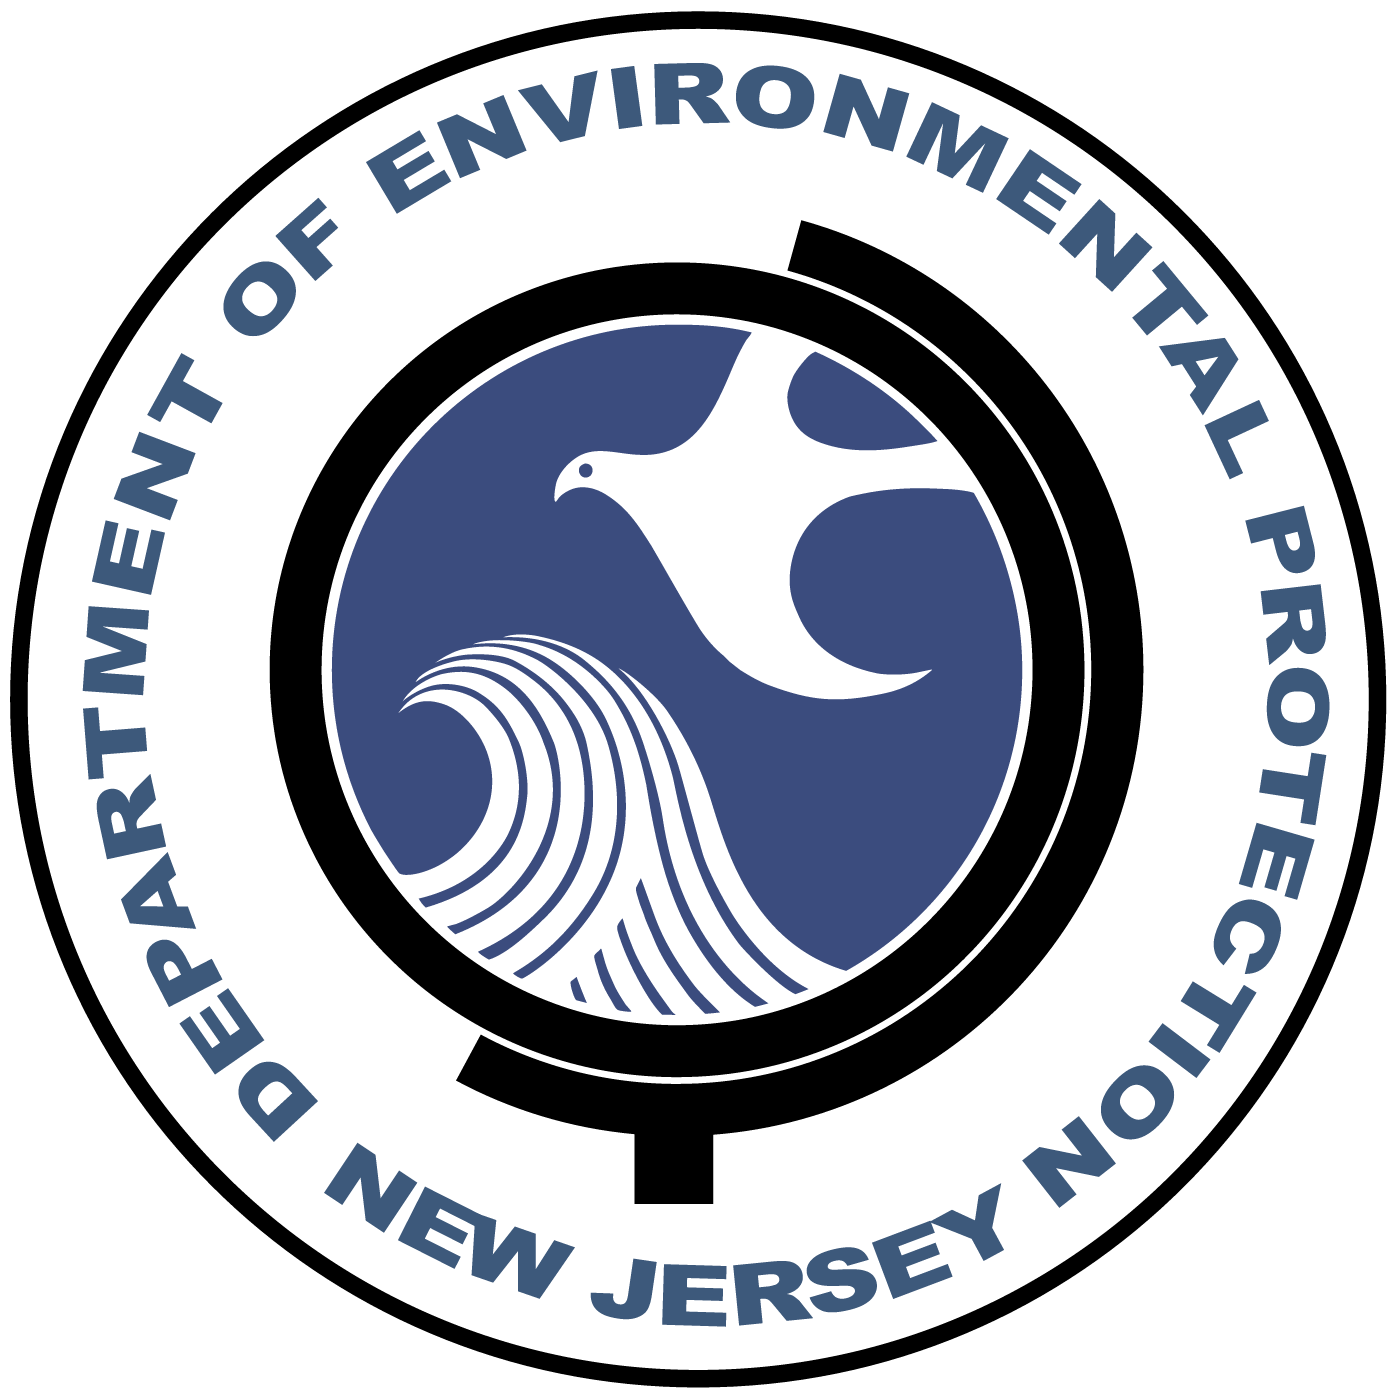 Episode 31-America Recycles Day with Steve Rinaldi